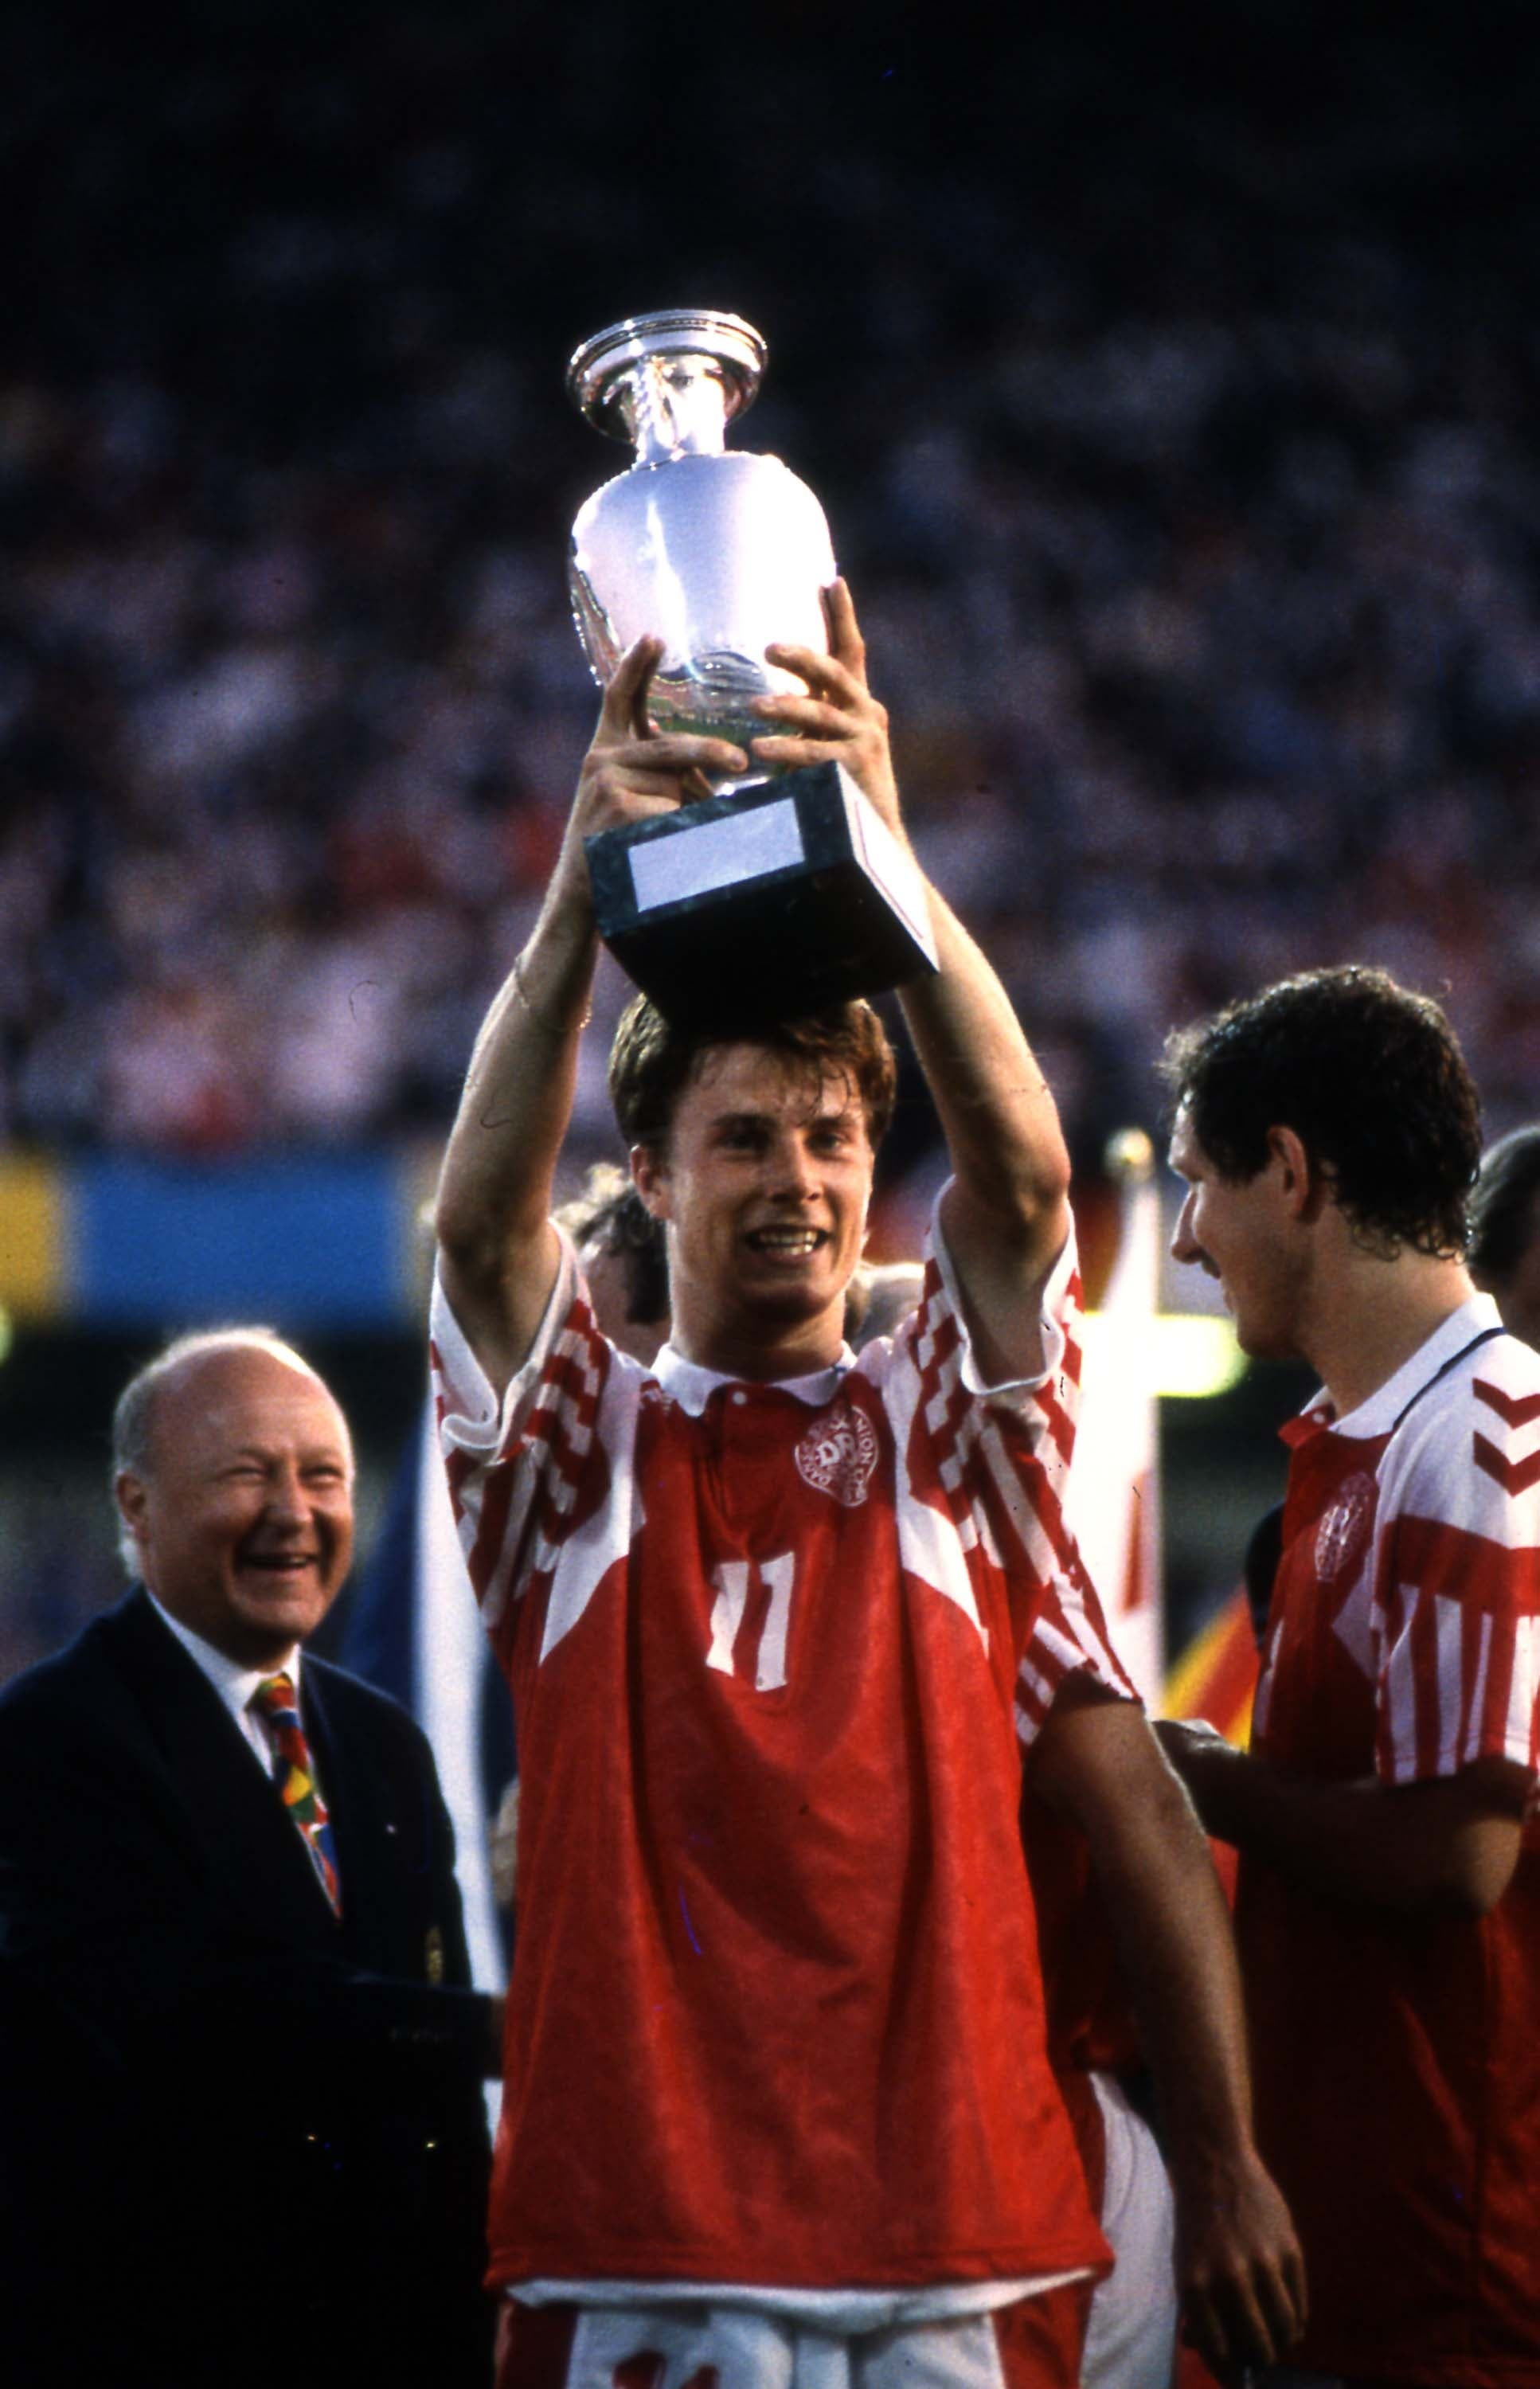 Brian Laudrup, at center, of Denmark soccer team lifts the trophy after winning the final game of the European soccer Championships, on June 26, 1992 in Goteborg, Sweden. Denmark defeated Germany 2-0 to win the Championship. (AP)